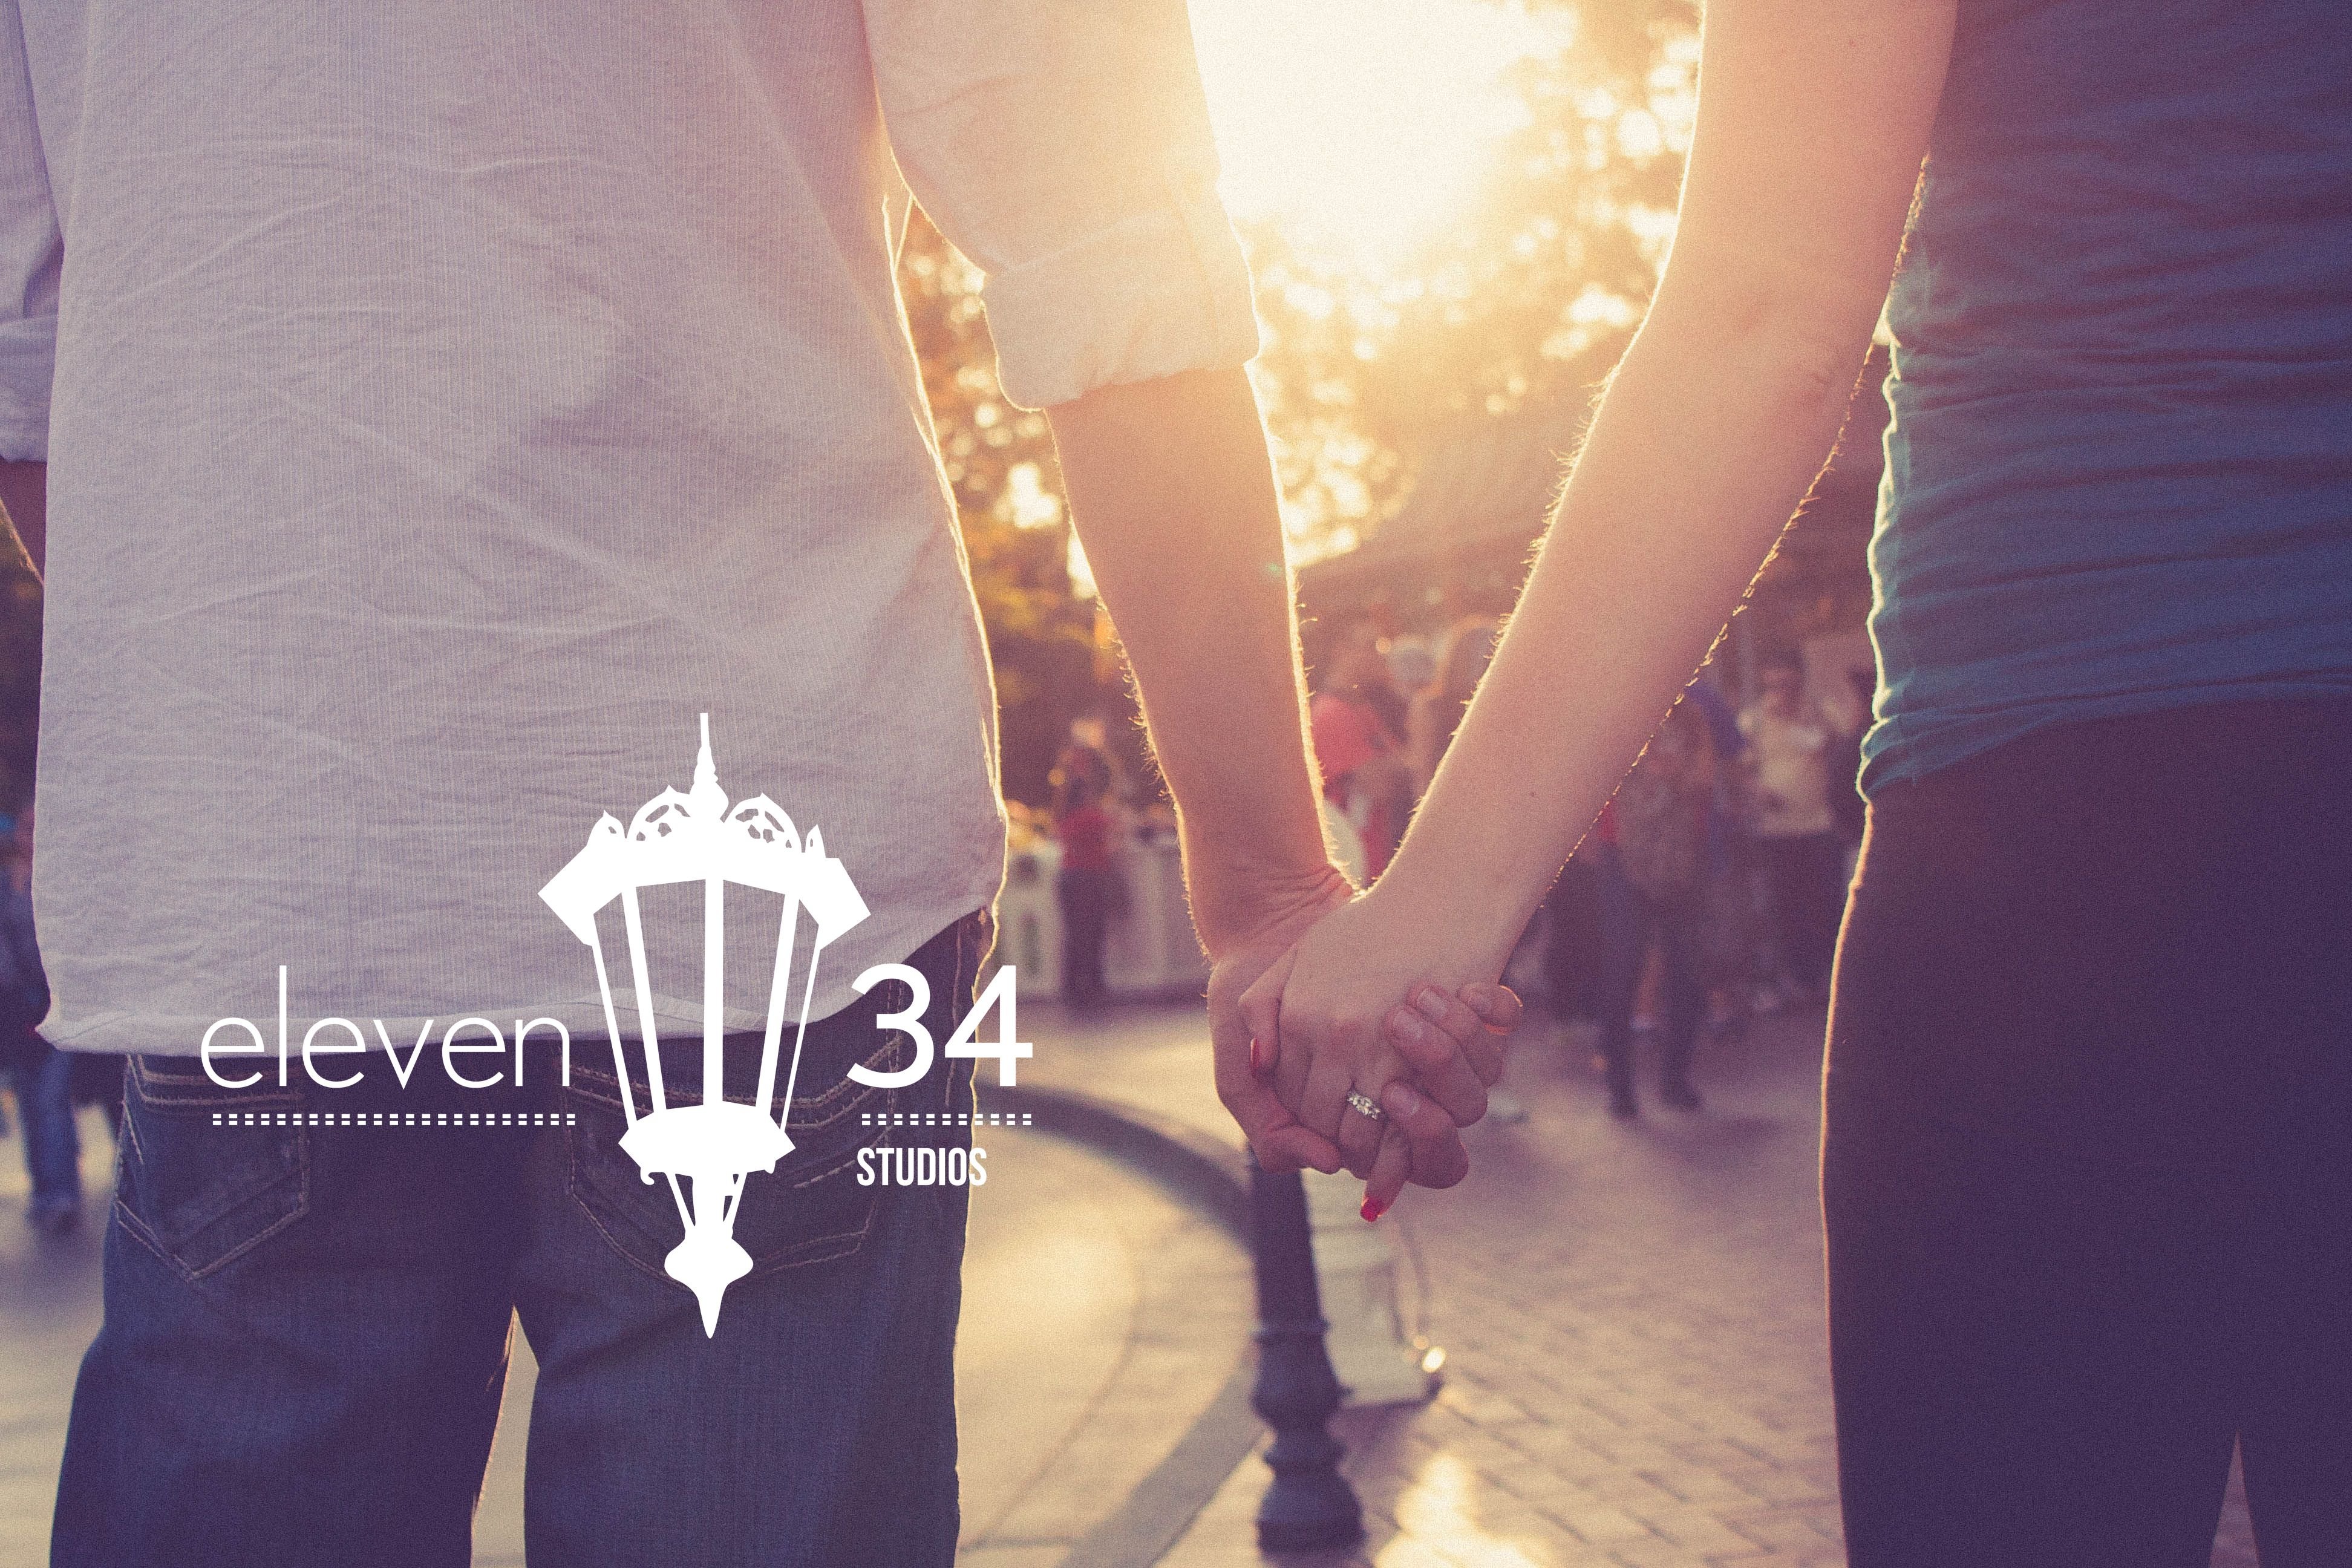 Post proposal, holding hands and walking at sunset through the crowds